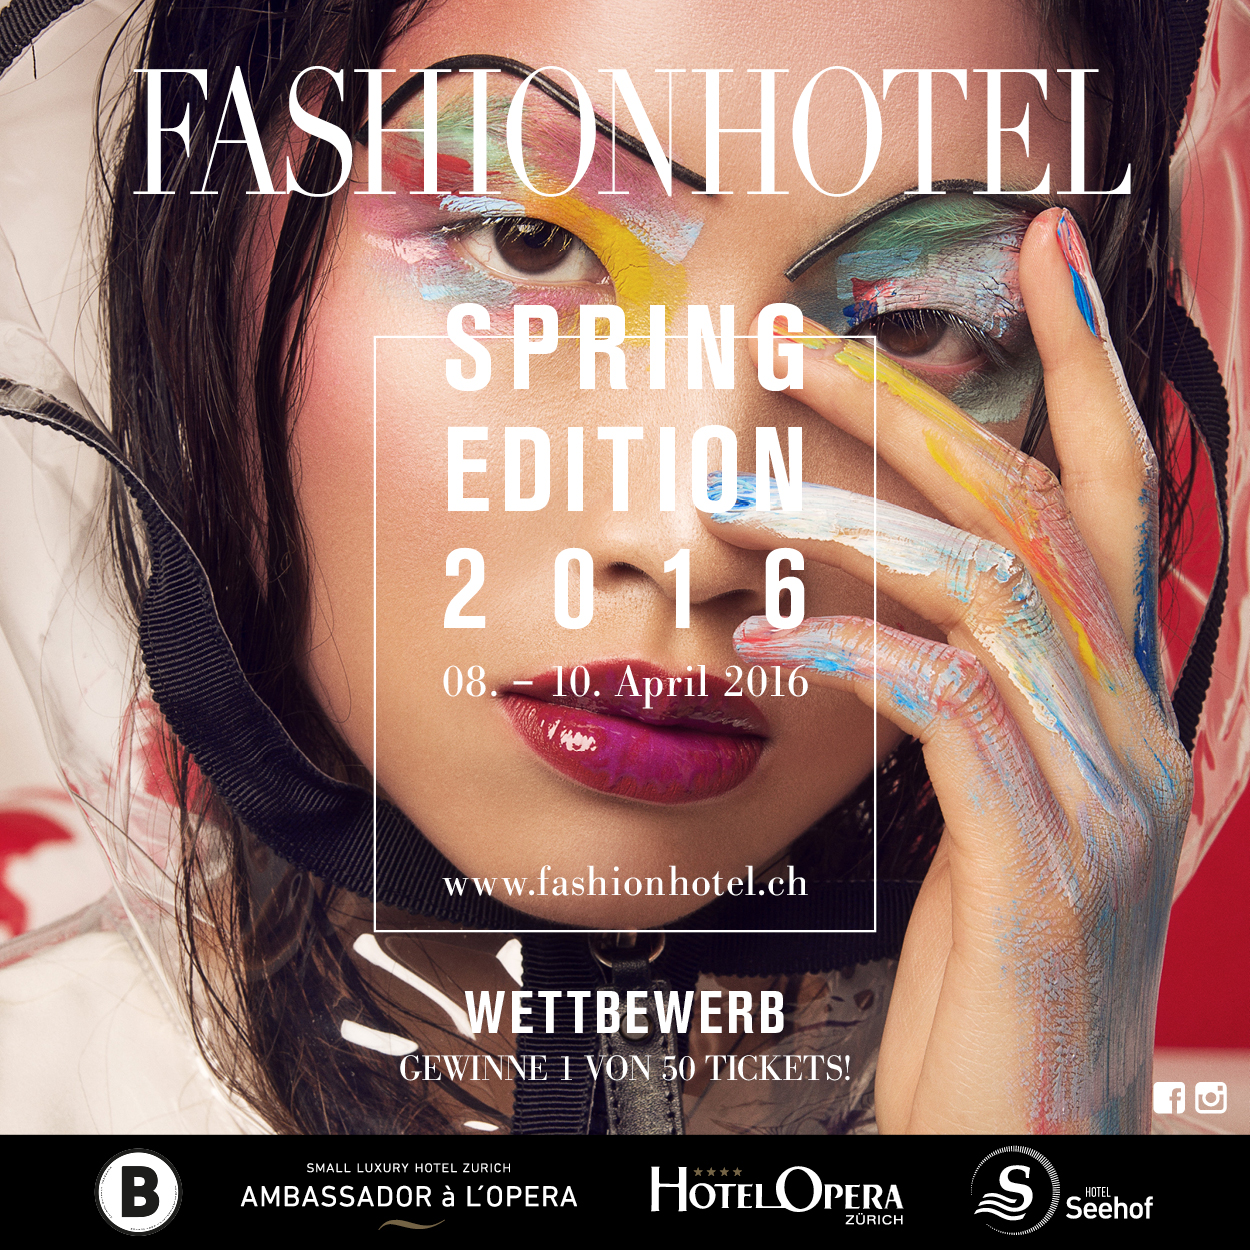 FASHIONHOTEL 08. APRIL 2016 IN ZÜRICH